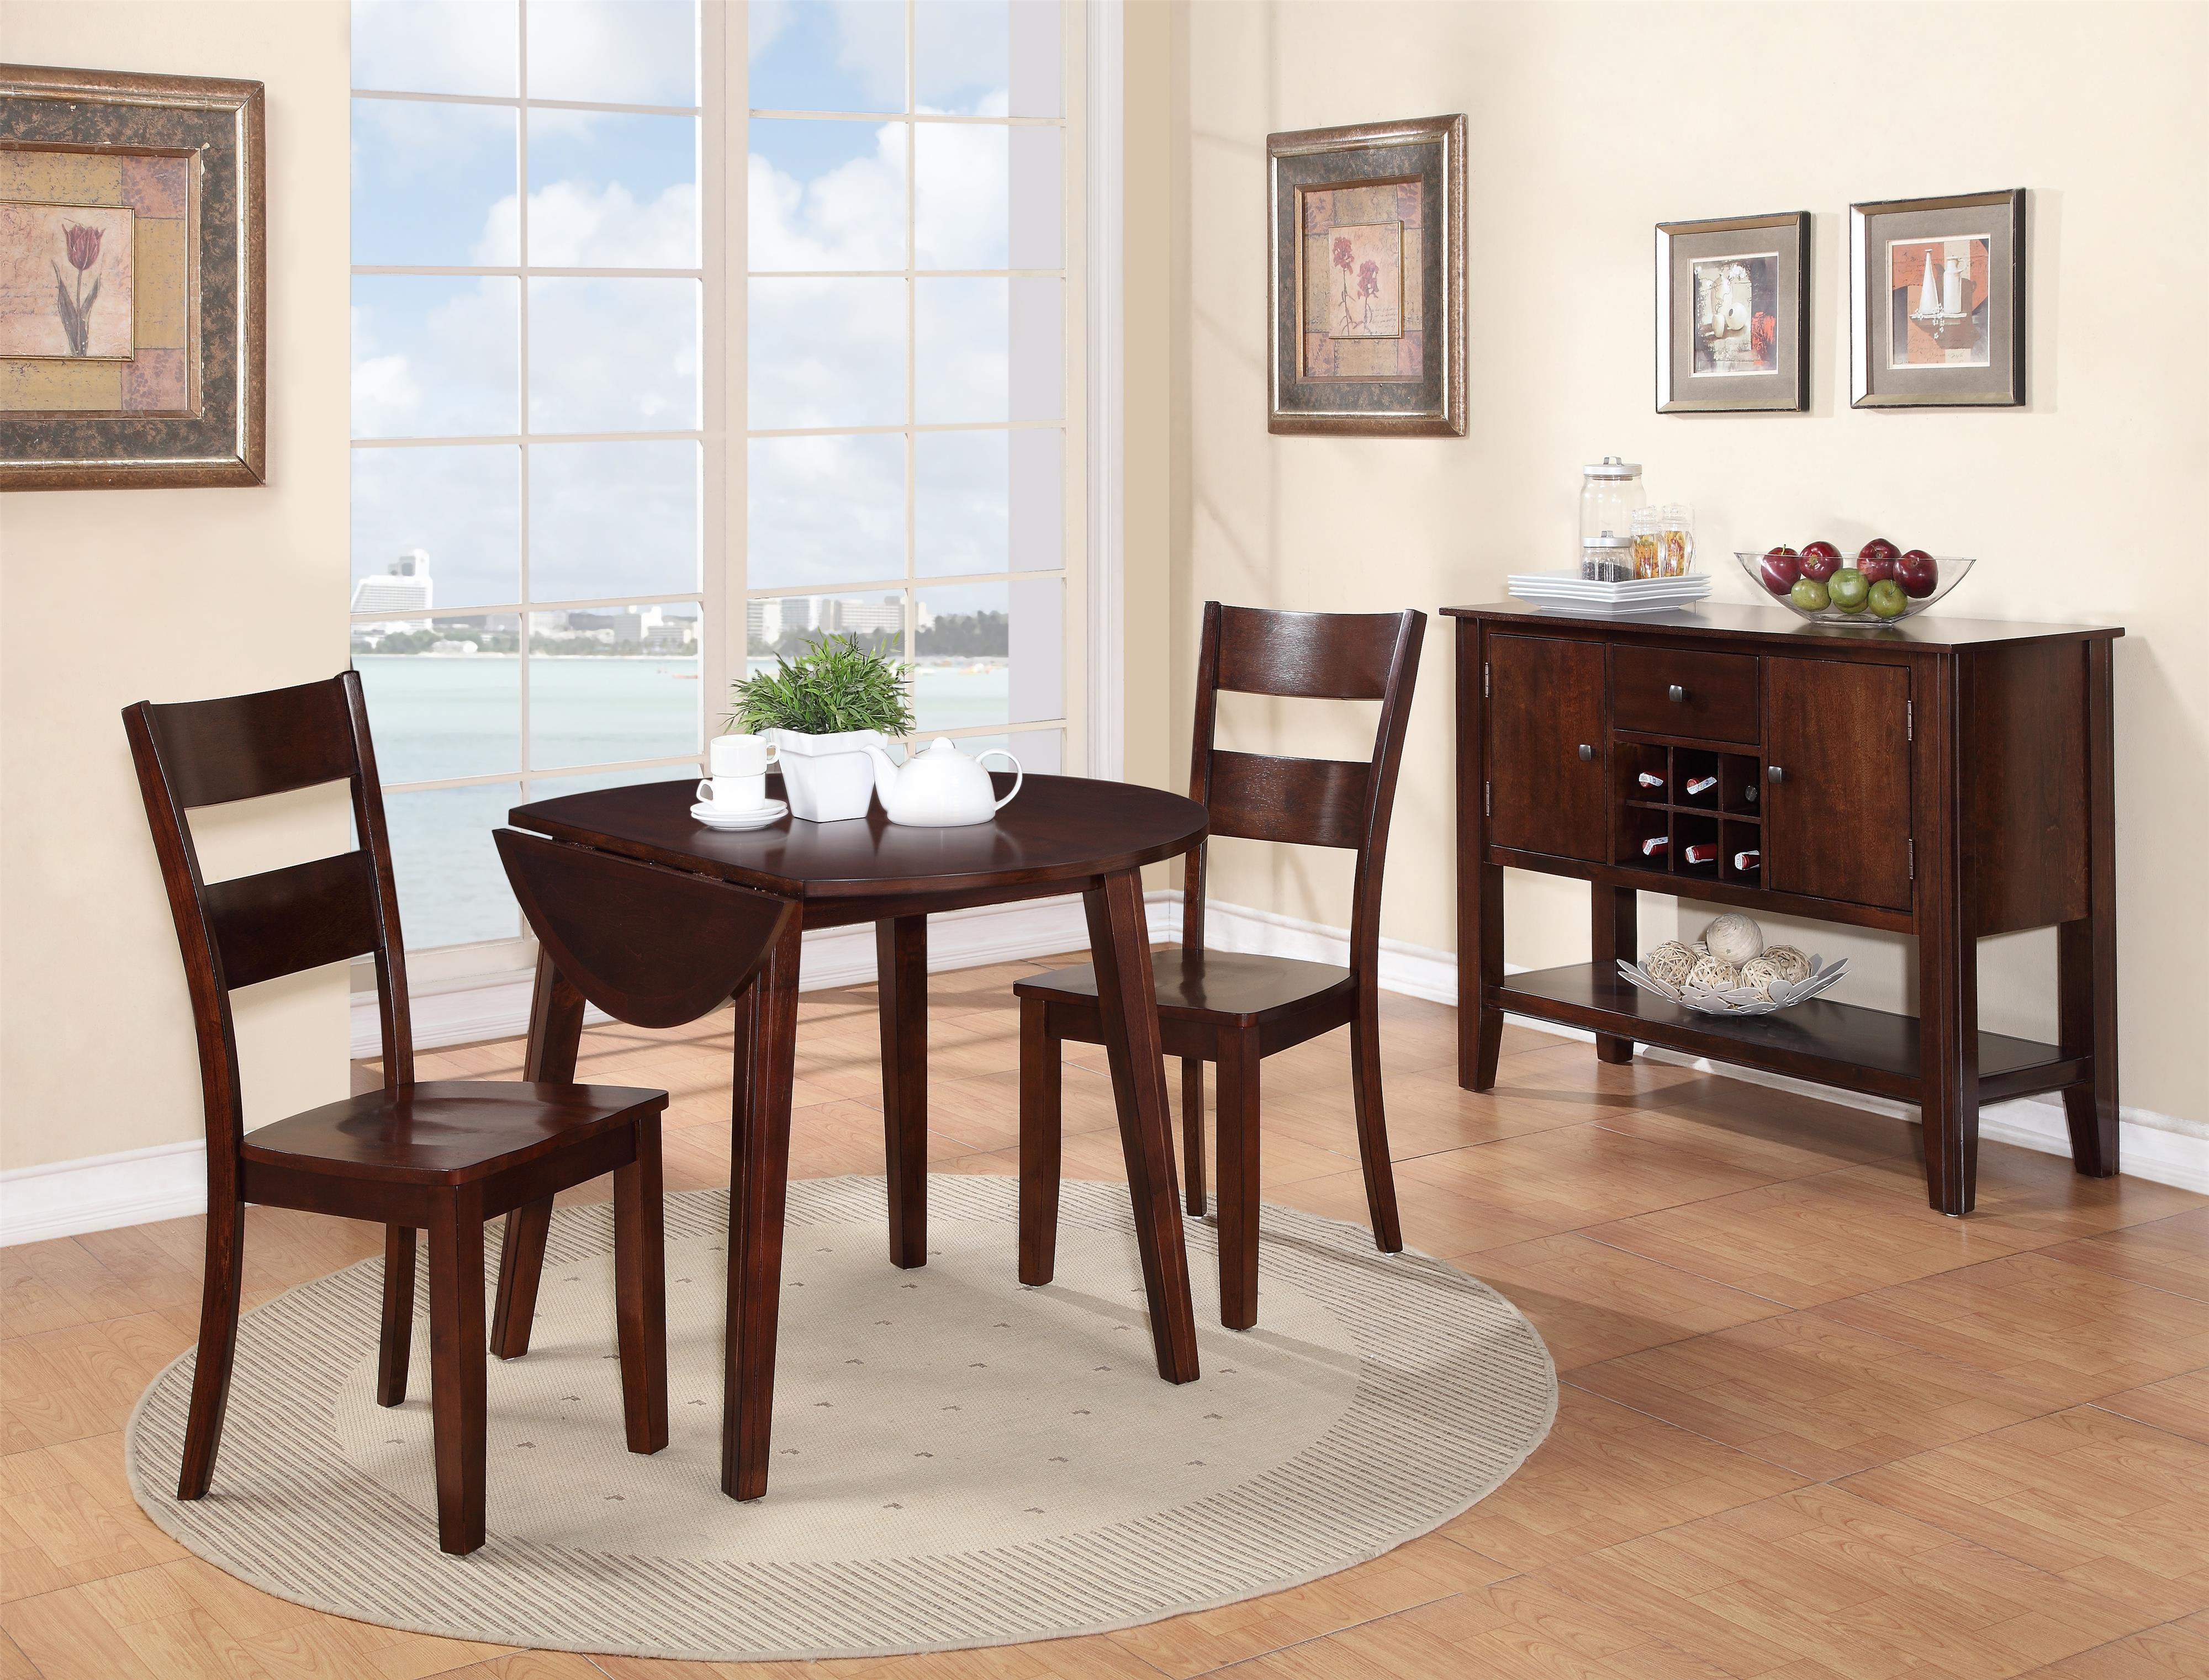 Holland House 8203 3 Piece Dining Set With Drop Leaf Table | L Fish | Dining  3 Piece Set